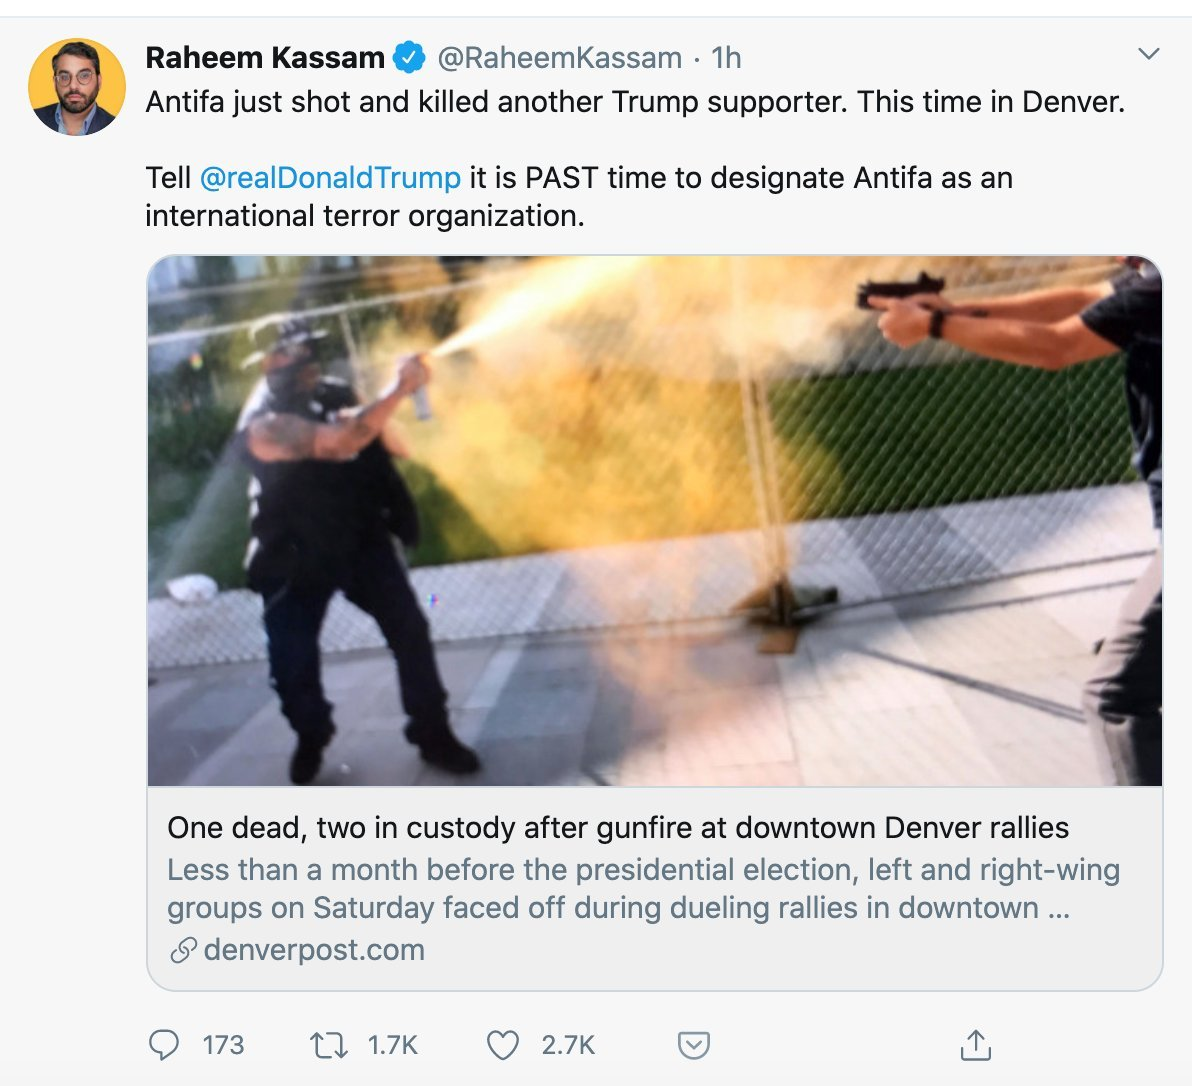 On October 10, 2020, Andy Ngo joined a handful of large alt-right accounts to spread false rumors that a Trump supporter was killed by a 'left-wing protester'.  In fact, the Trump supporter was shot while attacking a professional security guard hired to protect 9NEWS reporters.